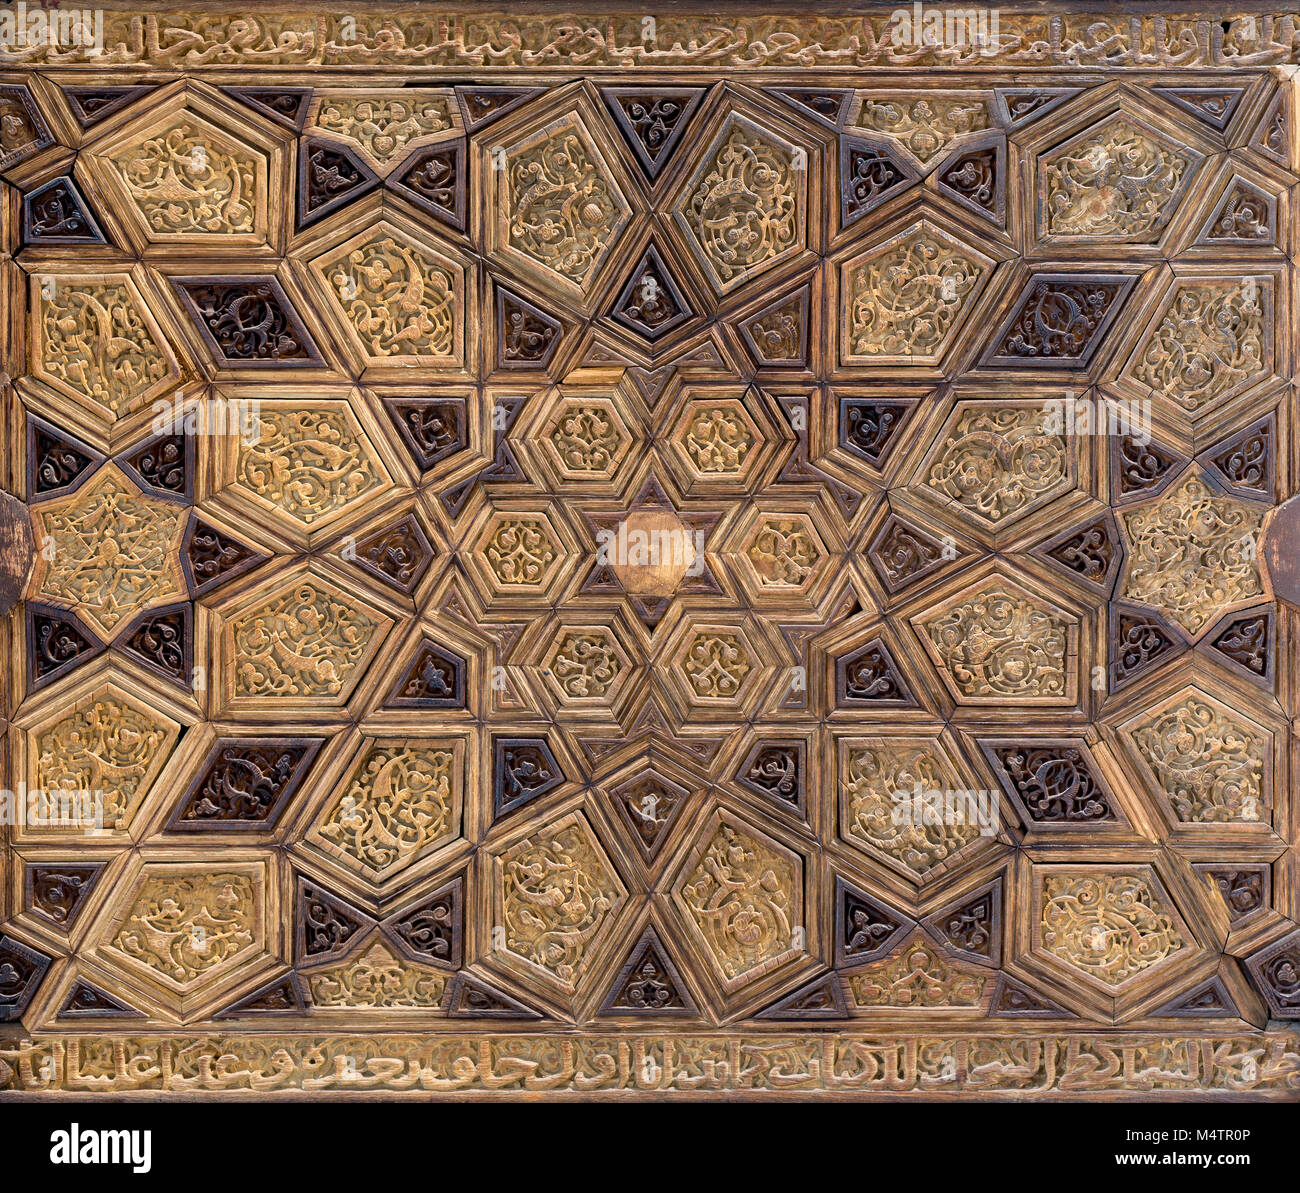 Ayyubid style panel with joined and carved wooden decorations of geometric and floral patterns, Mausoleum of Imam - Stock Image